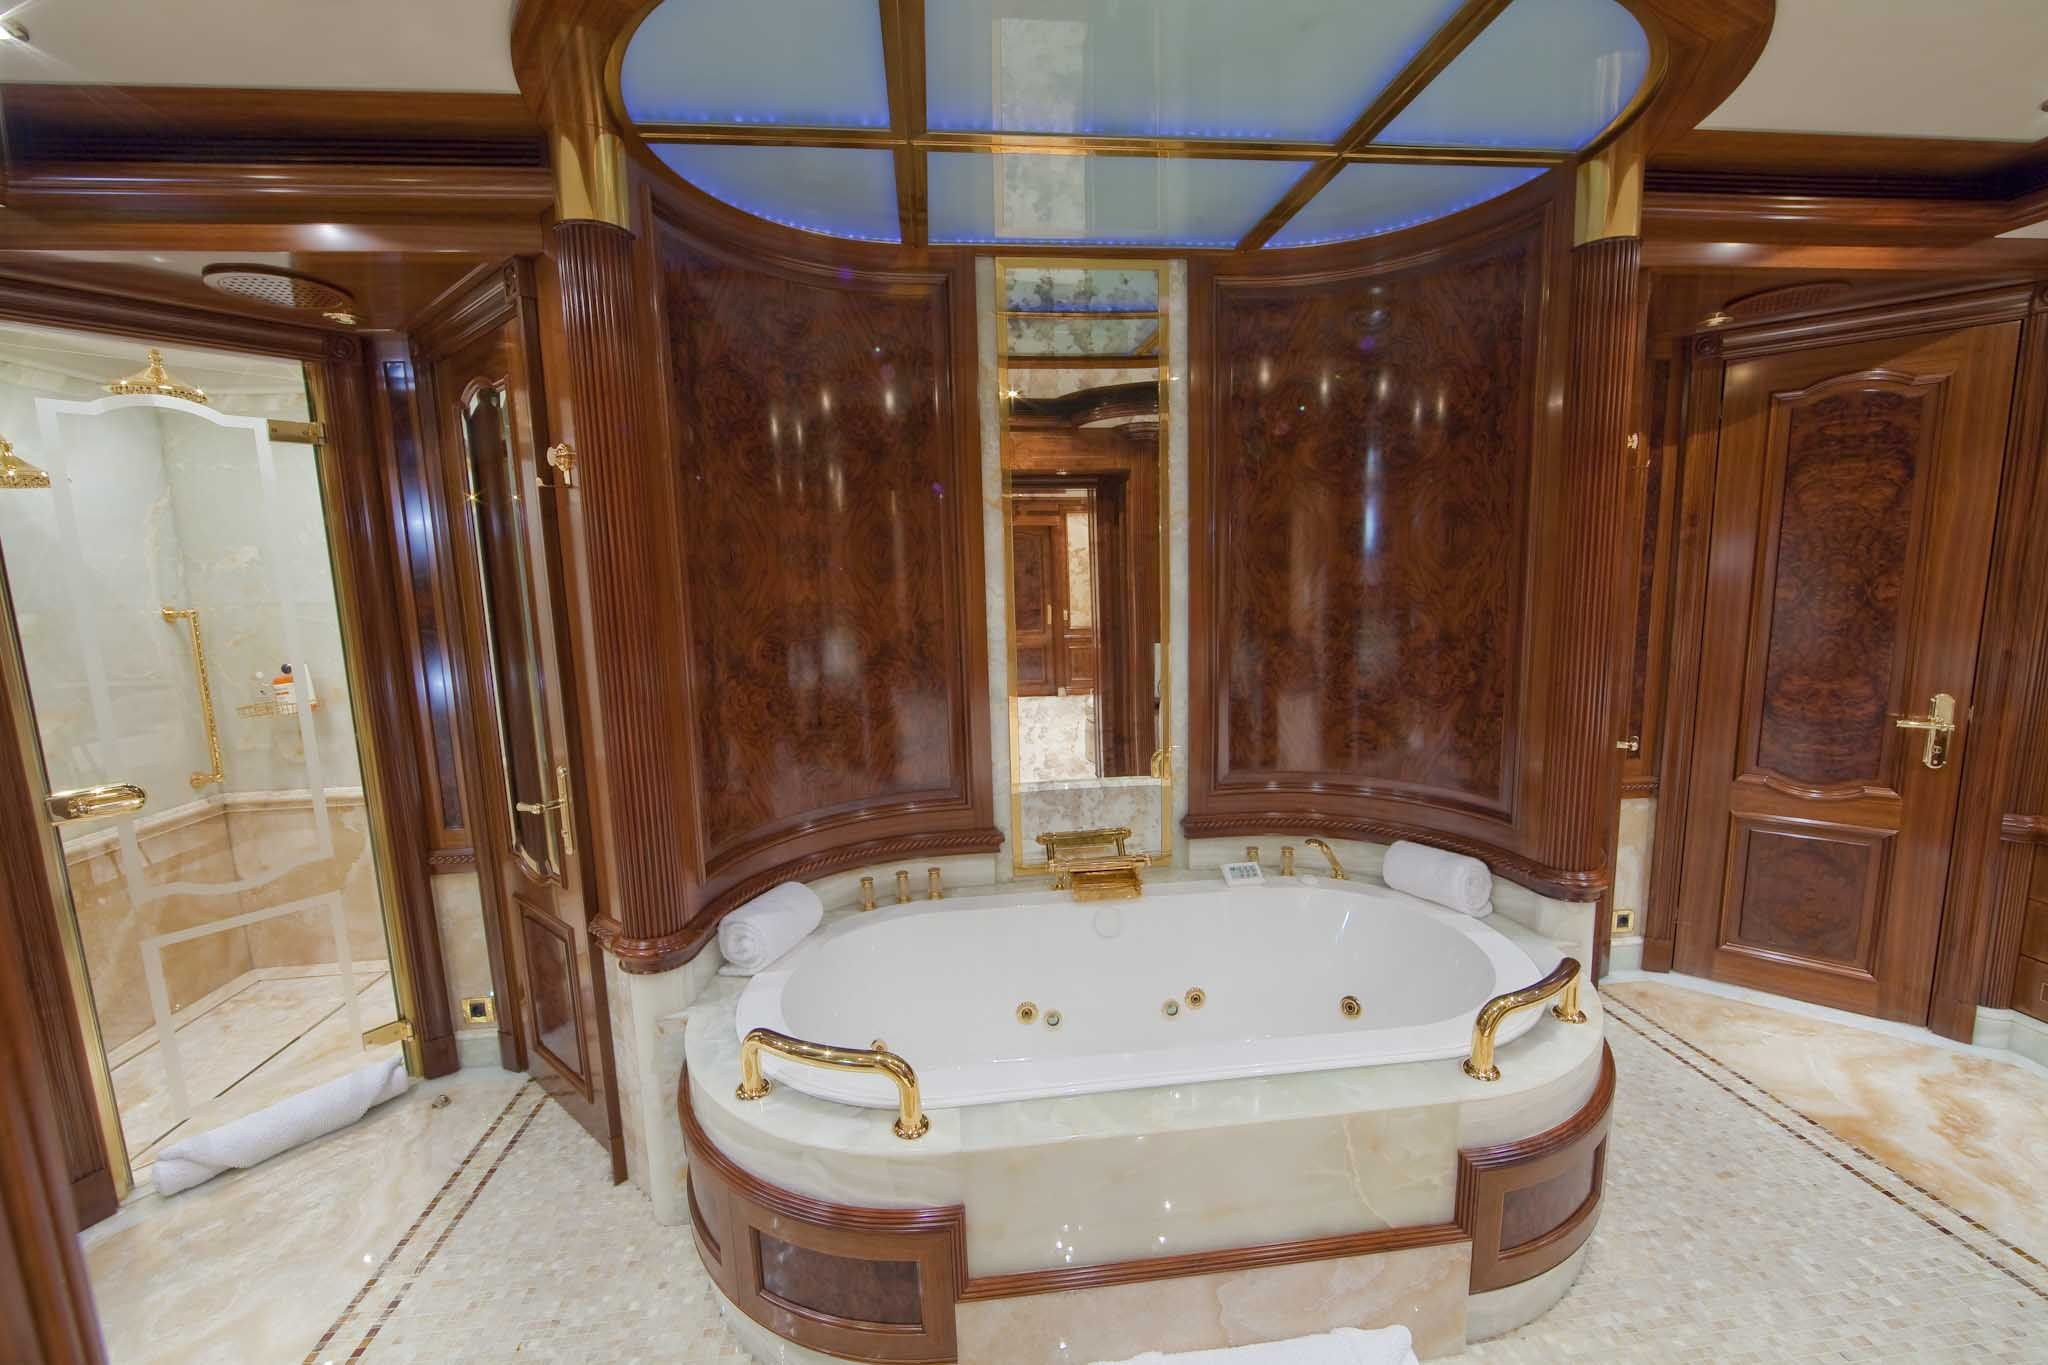 Merveilleux Luxury Bathrooms For The Rich · Master Suite ...